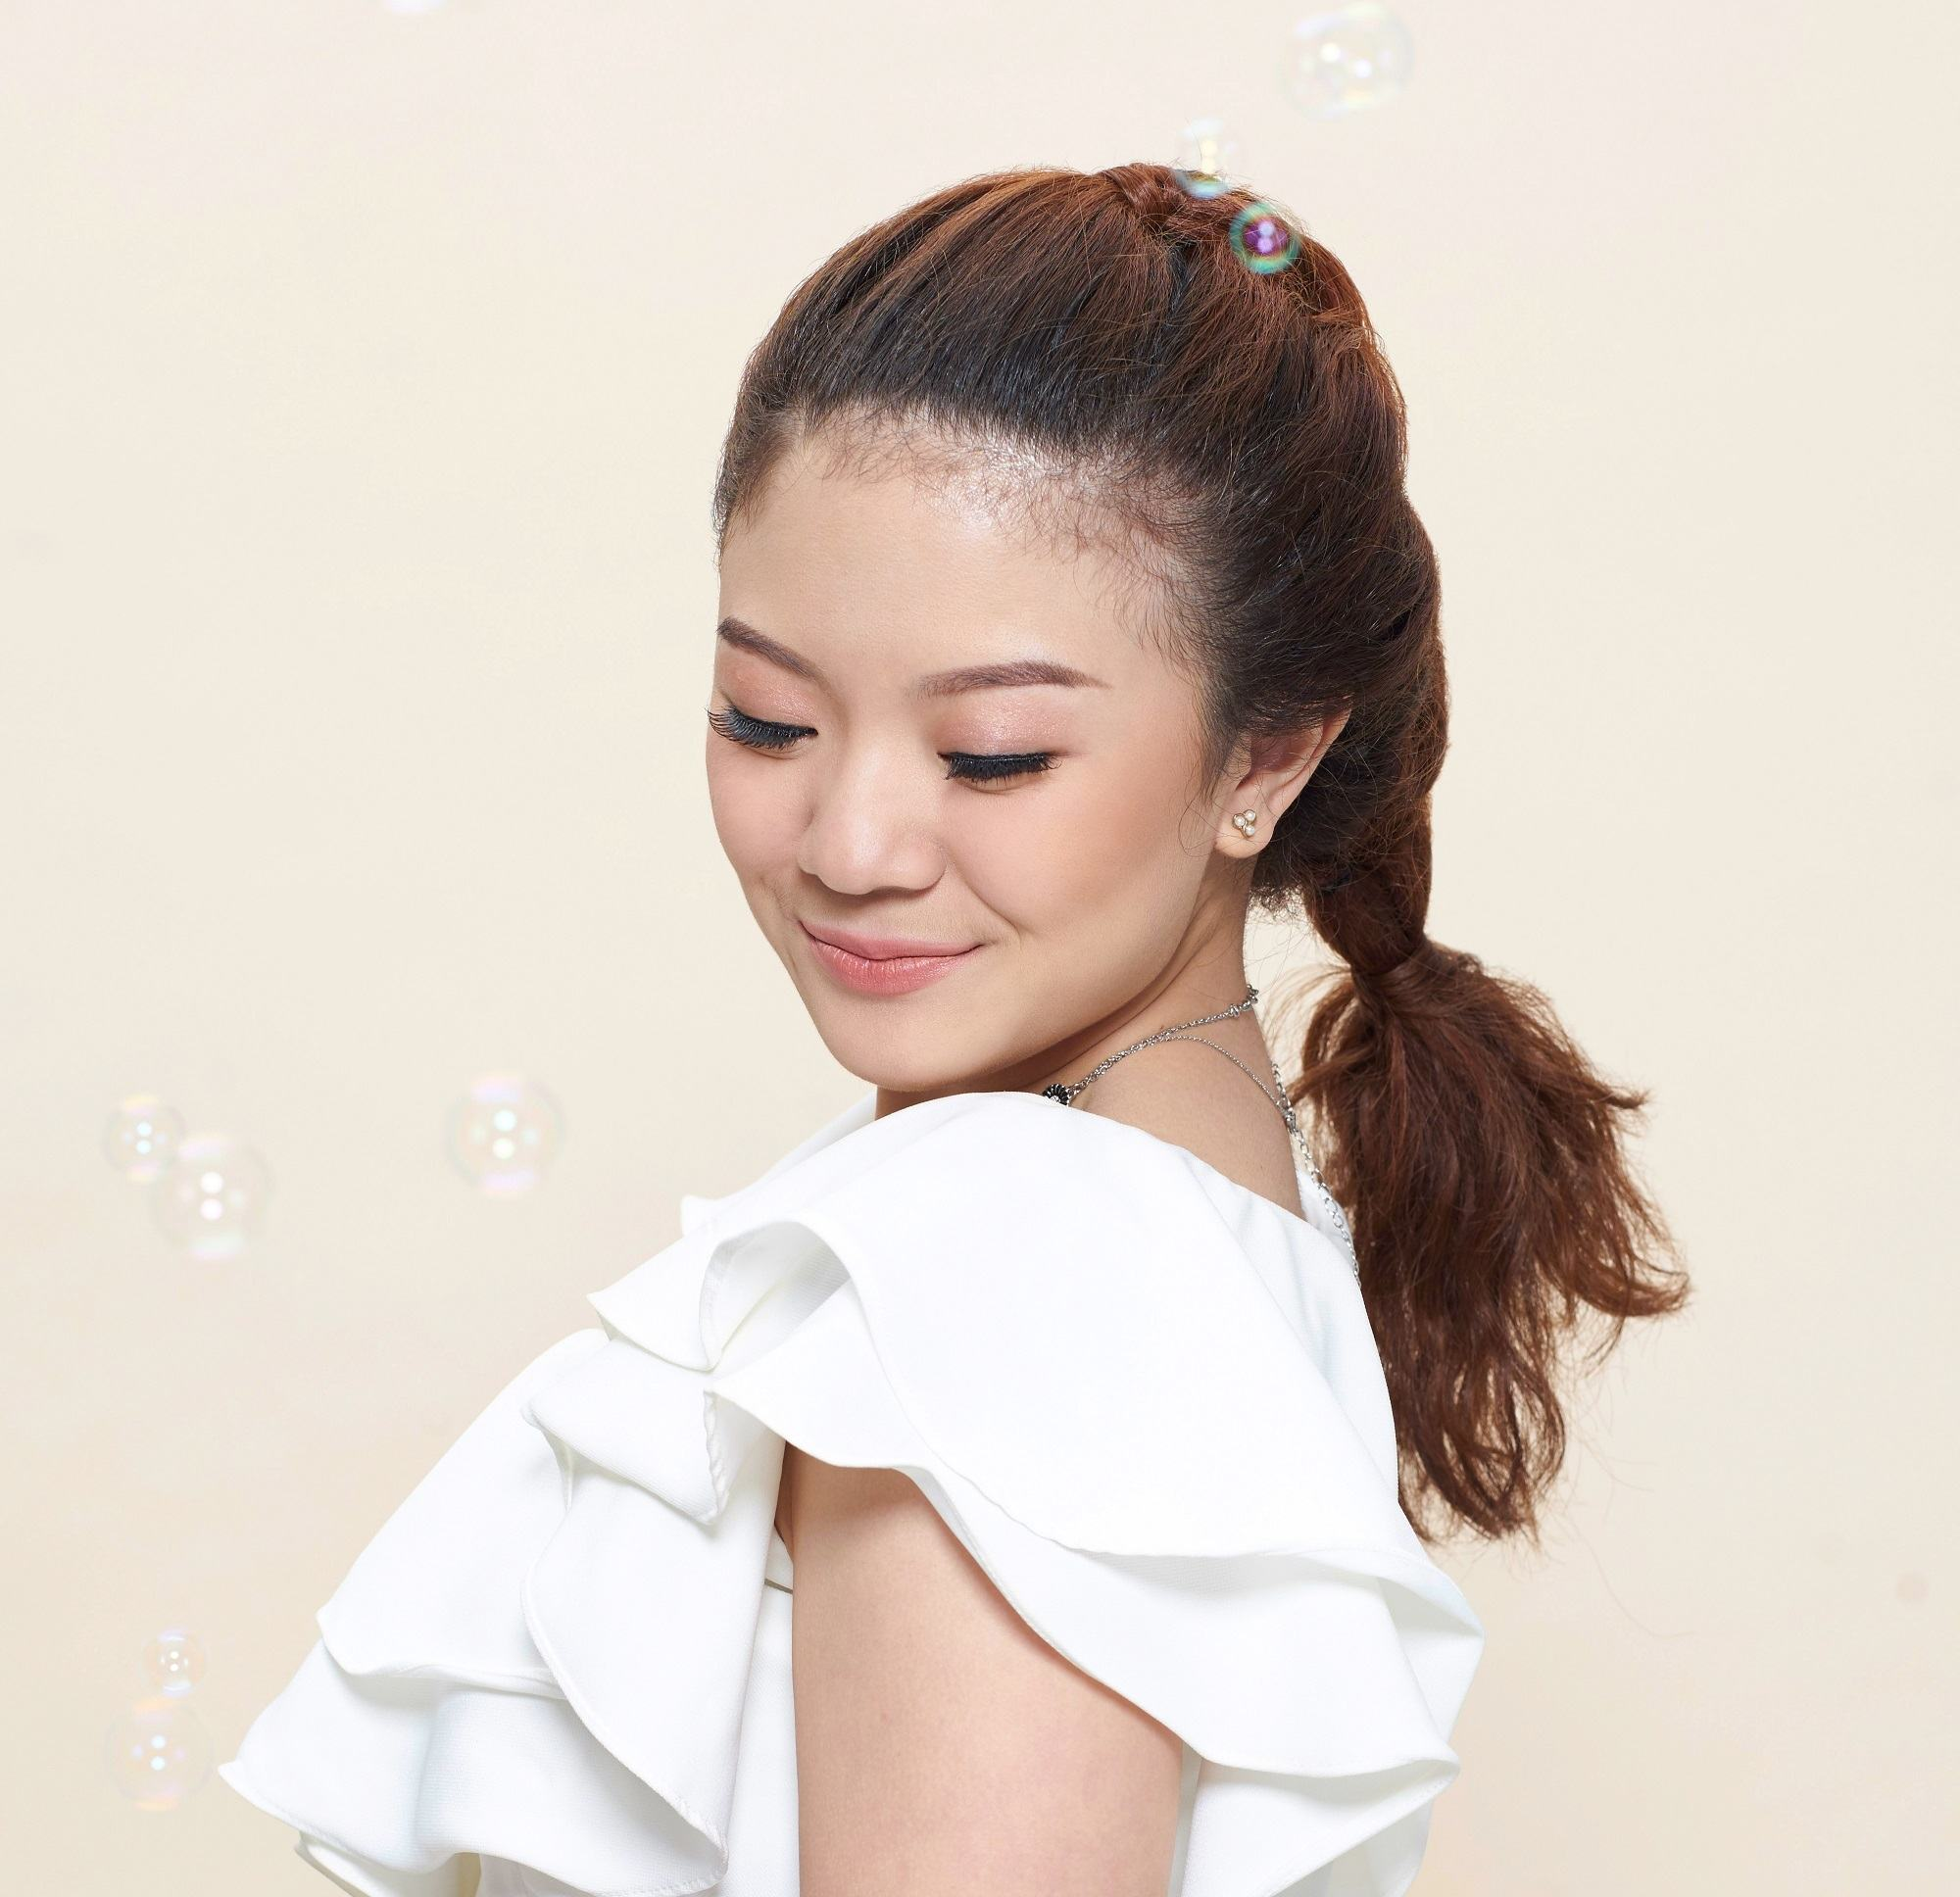 Shampoo for thick hair: Closeup shot of Asian woman with long brown hair in pull through braid wearing a white blouse